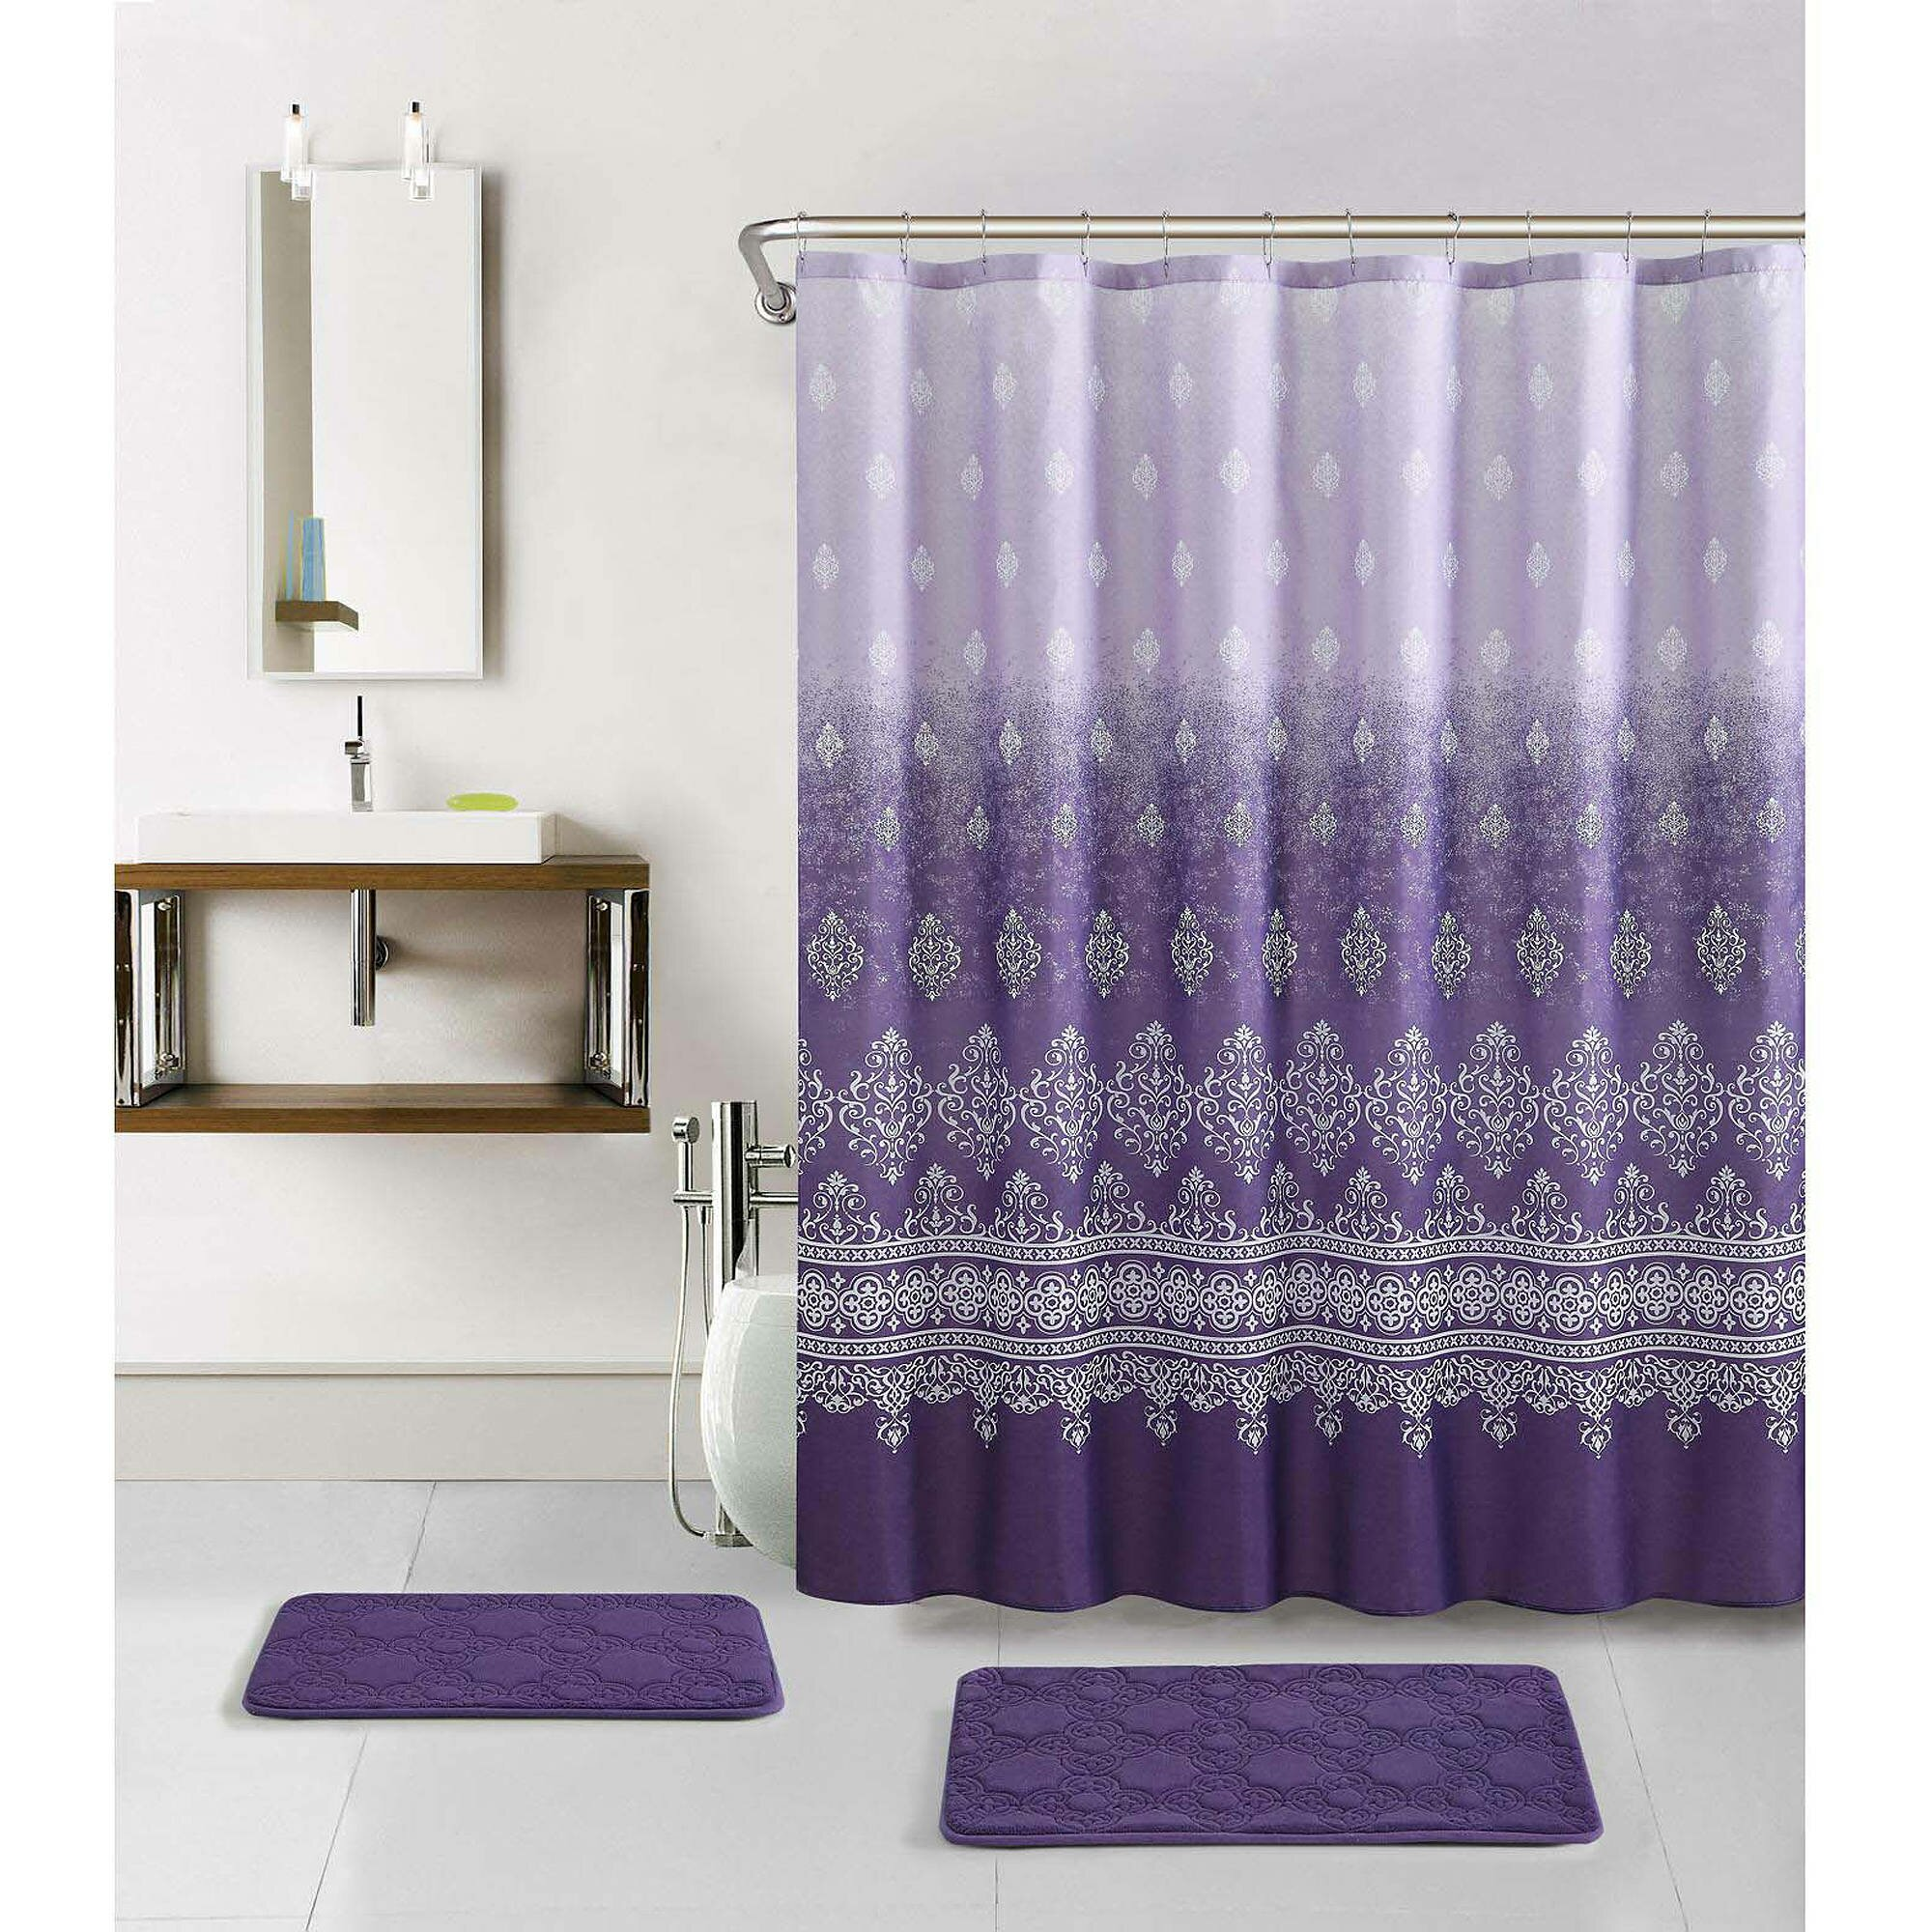 Curtain walmart shower curtain for cute your bathroom for Bath shower accessories